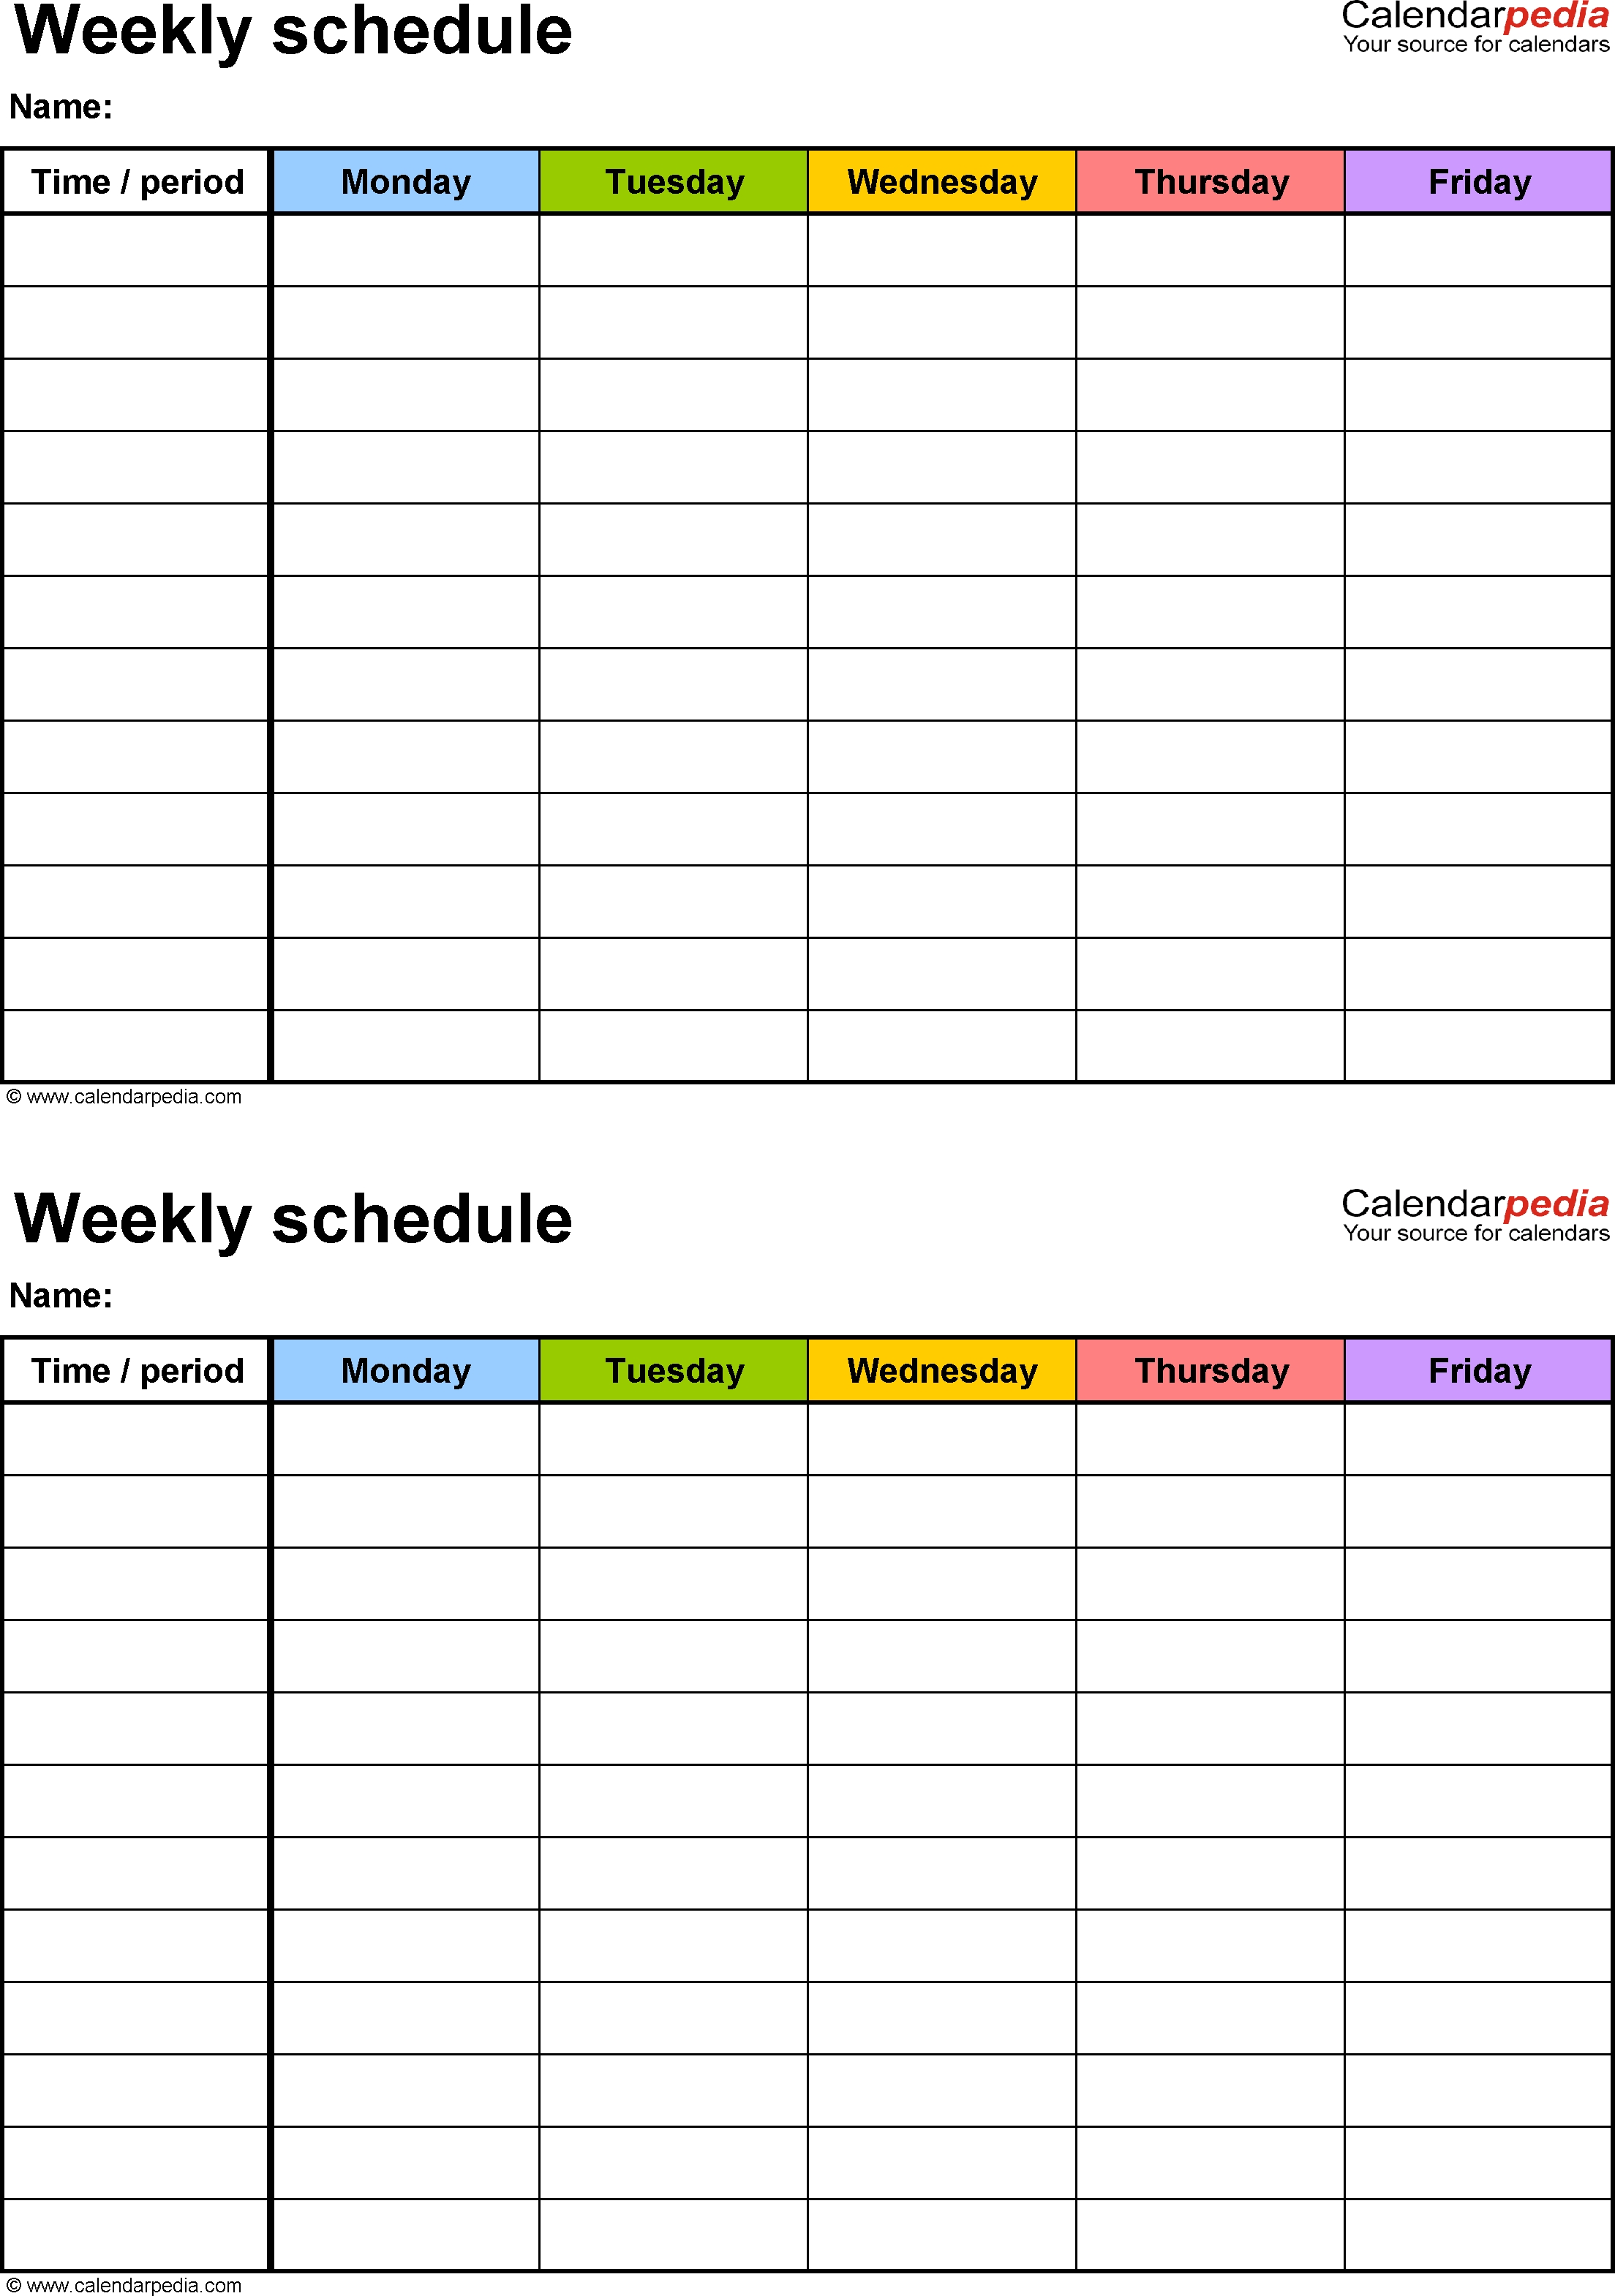 Free Weekly Schedule Templates For Word - 18 Templates for Blank Monday Through Friday Schedule